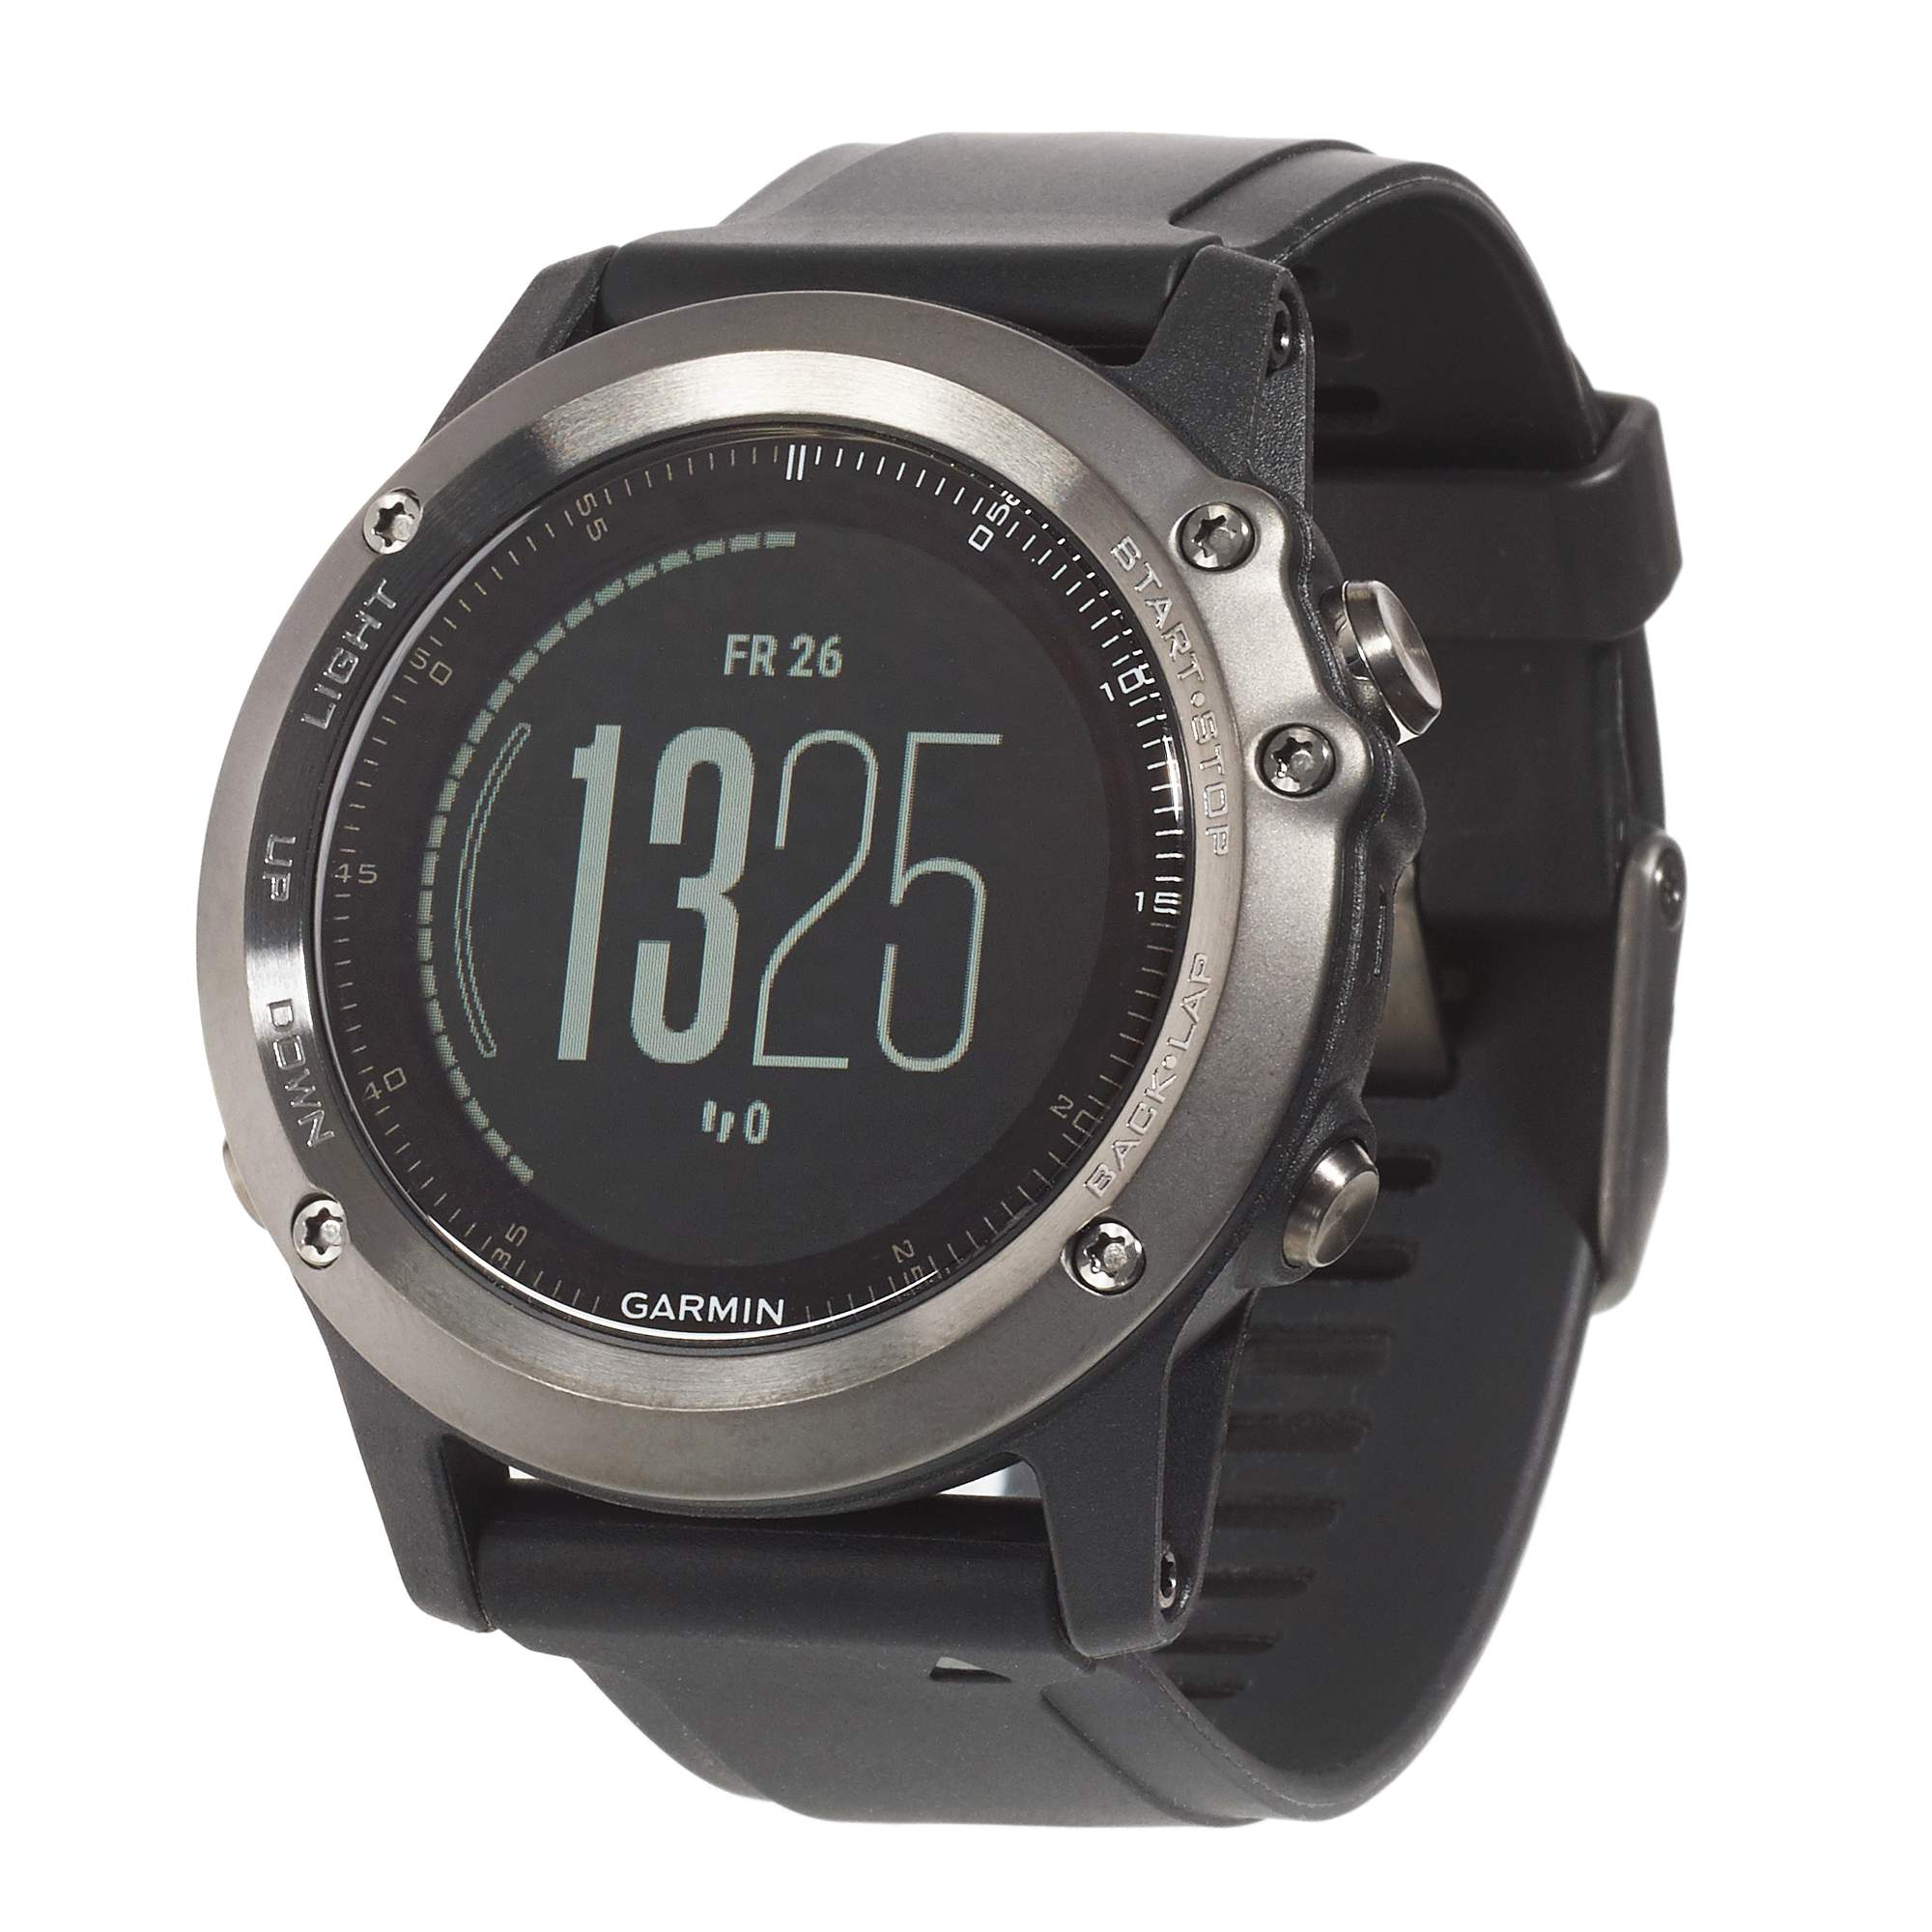 garmin fenix 3 hr saphirglas preisvergleich herren. Black Bedroom Furniture Sets. Home Design Ideas